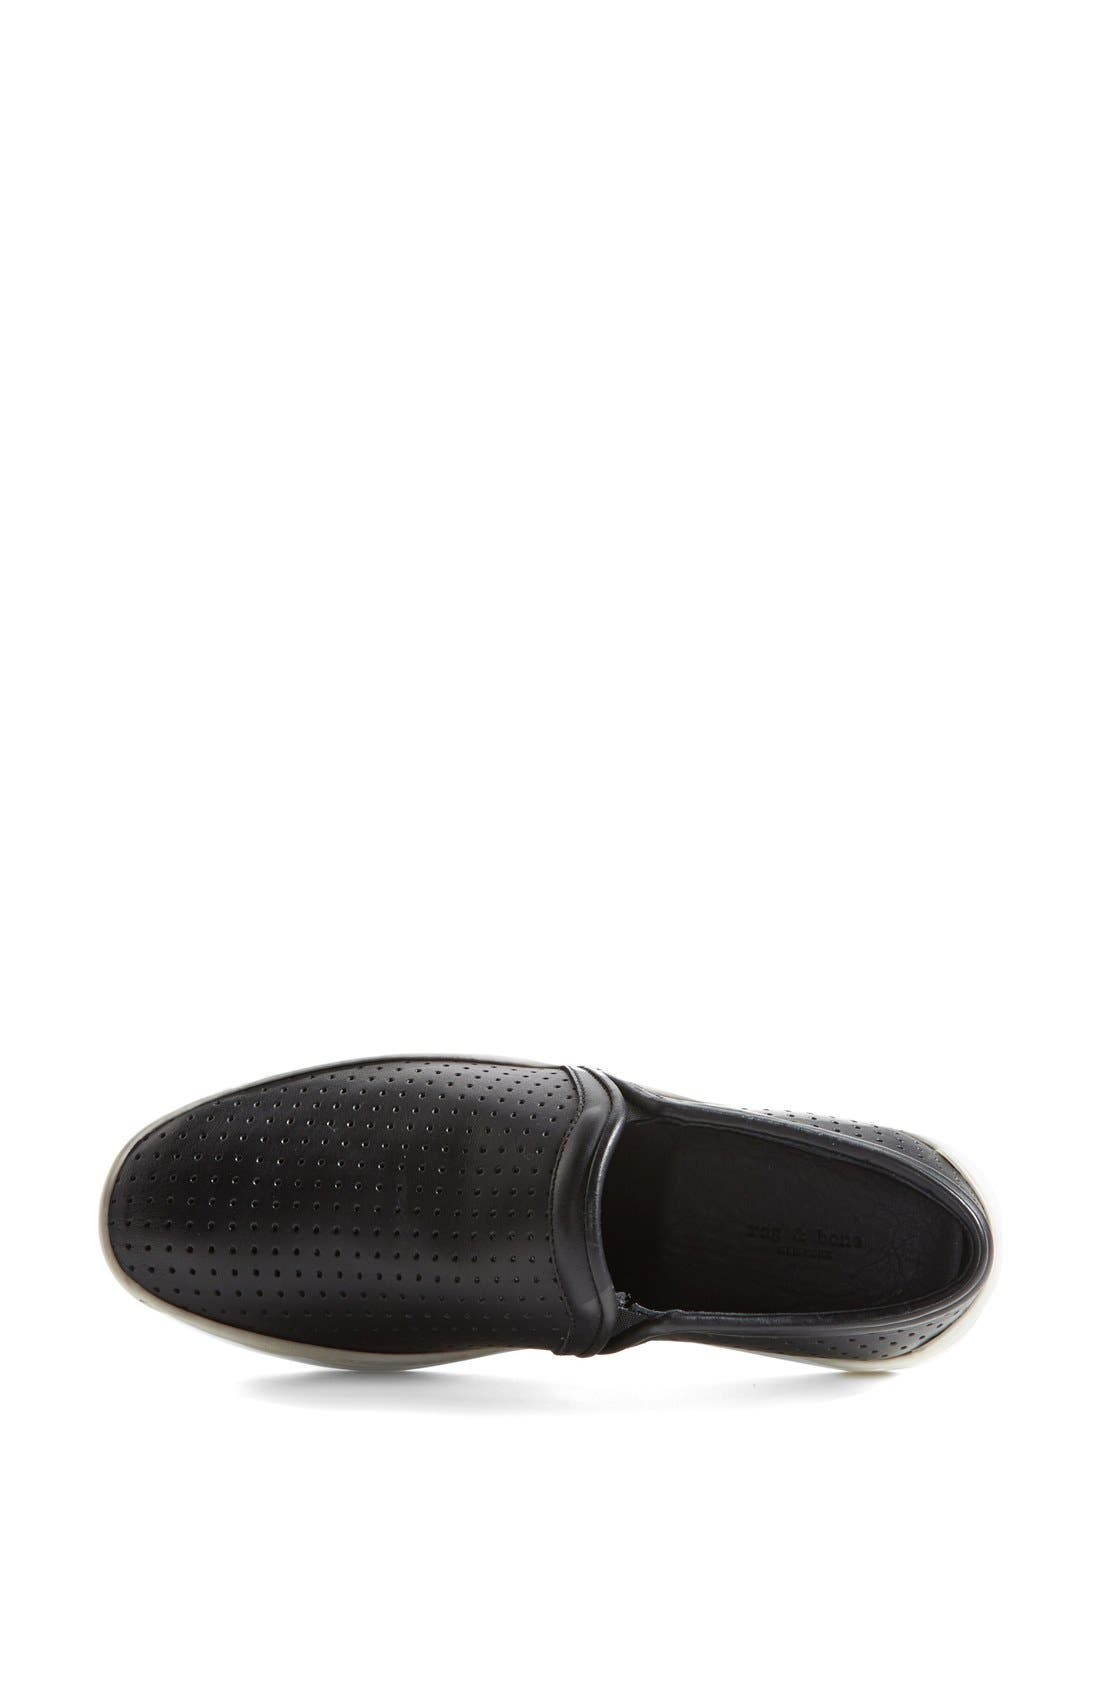 Alternate Image 3  - rag & bone 'Kent' Perforated Leather Slip-On